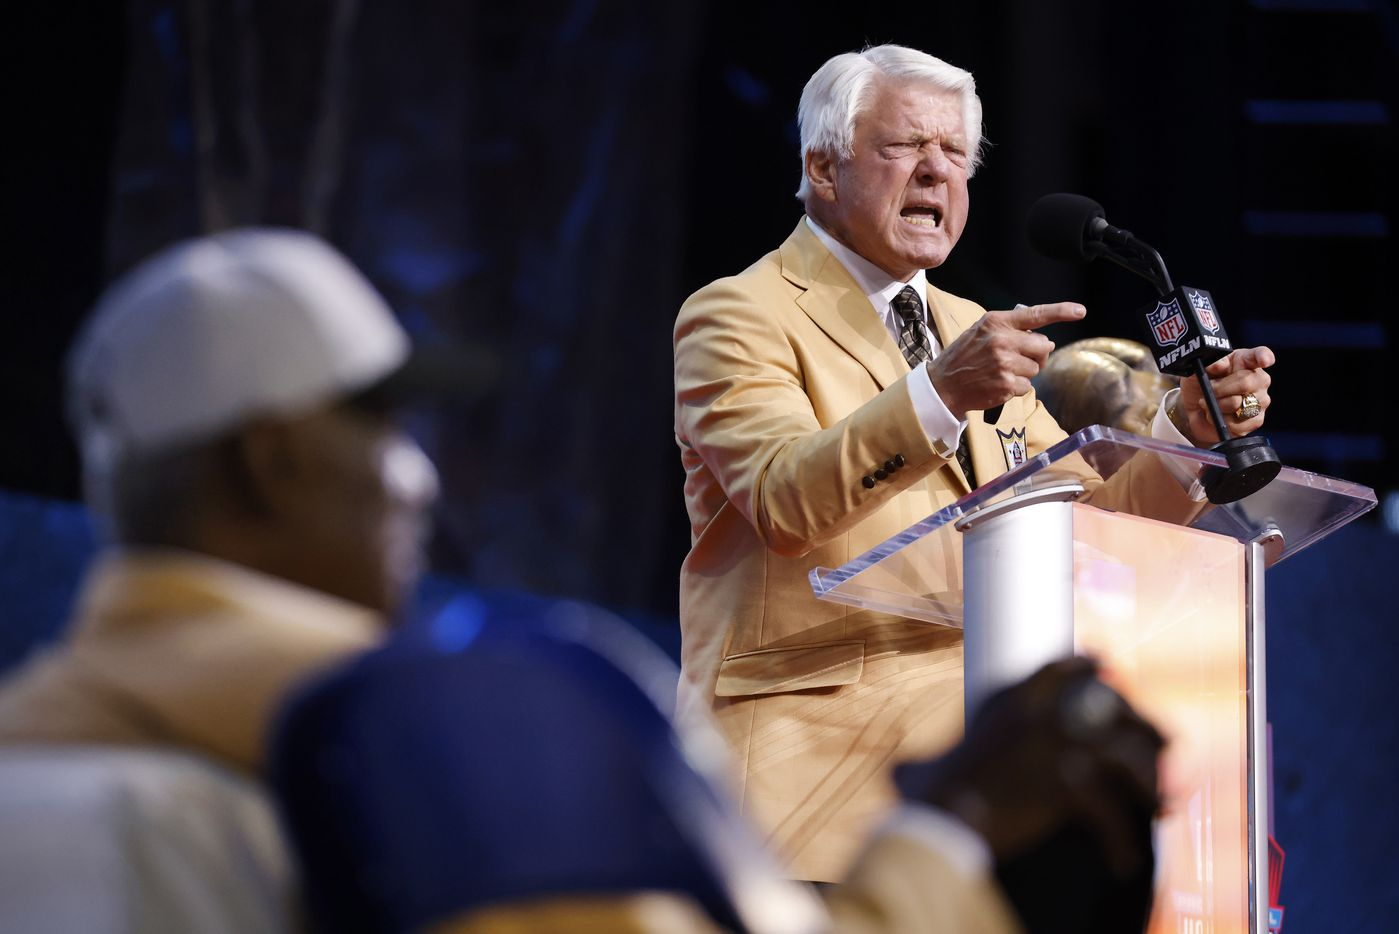 Pro Football Hall of Fame inductee Jimmy Johnson of the Dallas Cowboys delivers his speech during the Centennial Class of 2020 enshrinement ceremony at Tom Benson Hall of Fame Stadium in Canton, Ohio, Saturday, August 7, 2021. (Tom Fox/The Dallas Morning News)